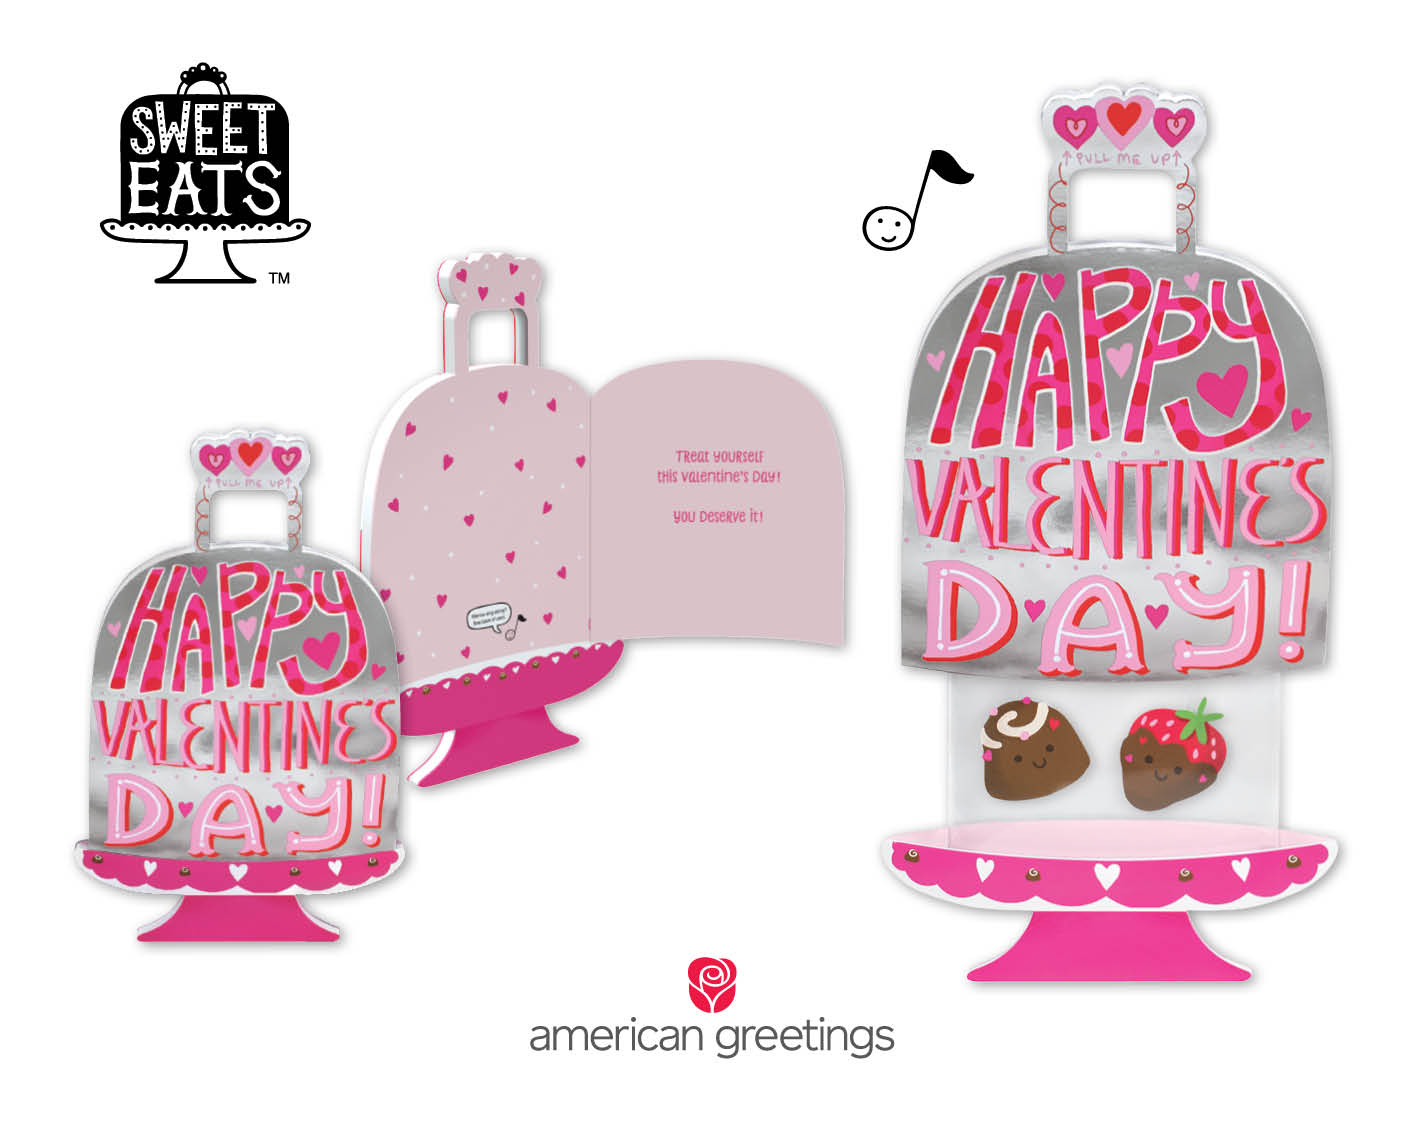 Make Their Valentine's Day Delicious with New Sweet Eats ...